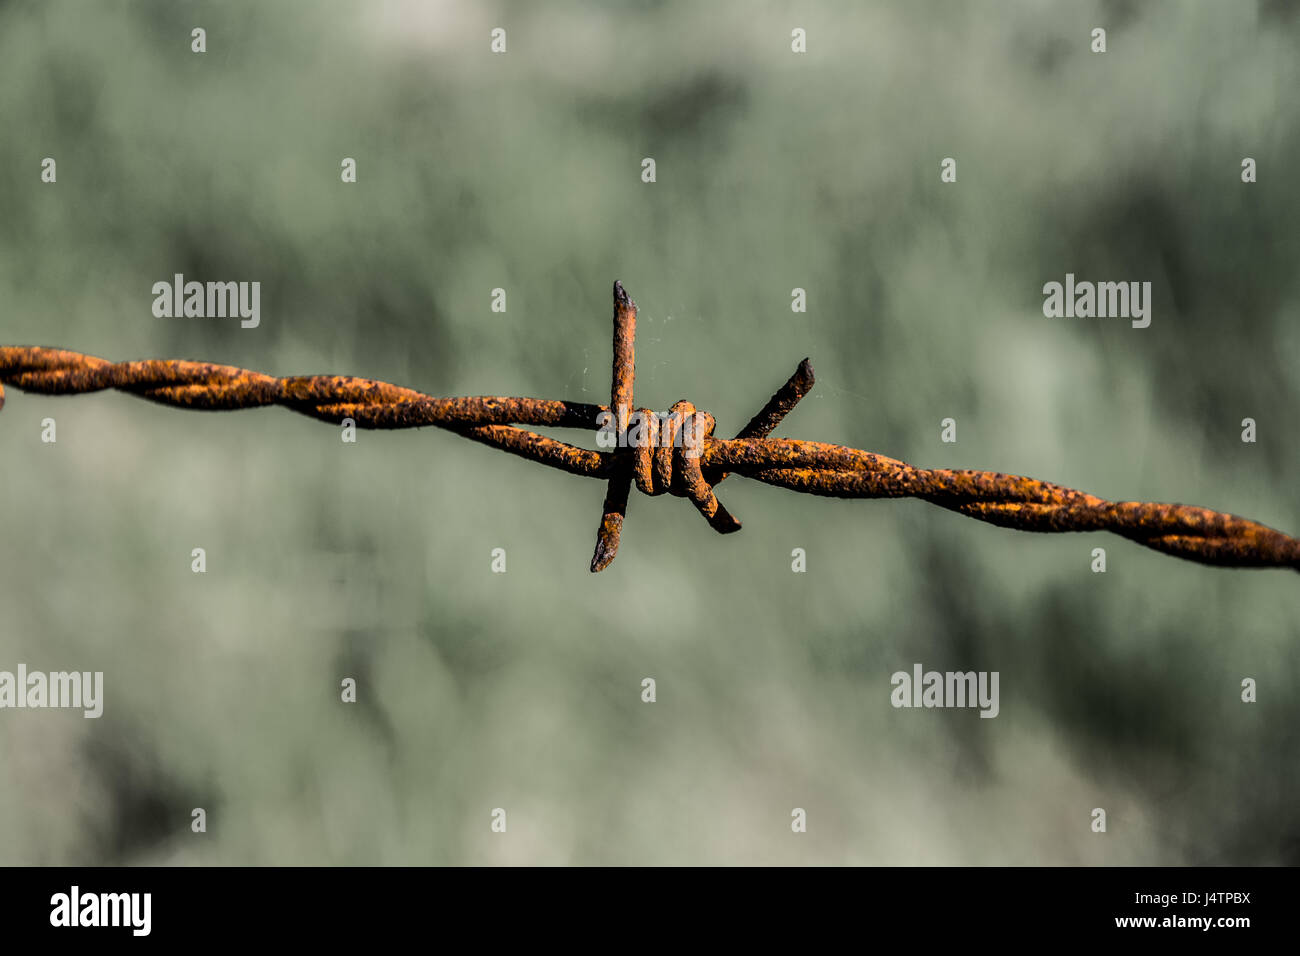 Rusty Barbed Wire - Wiring Diagram